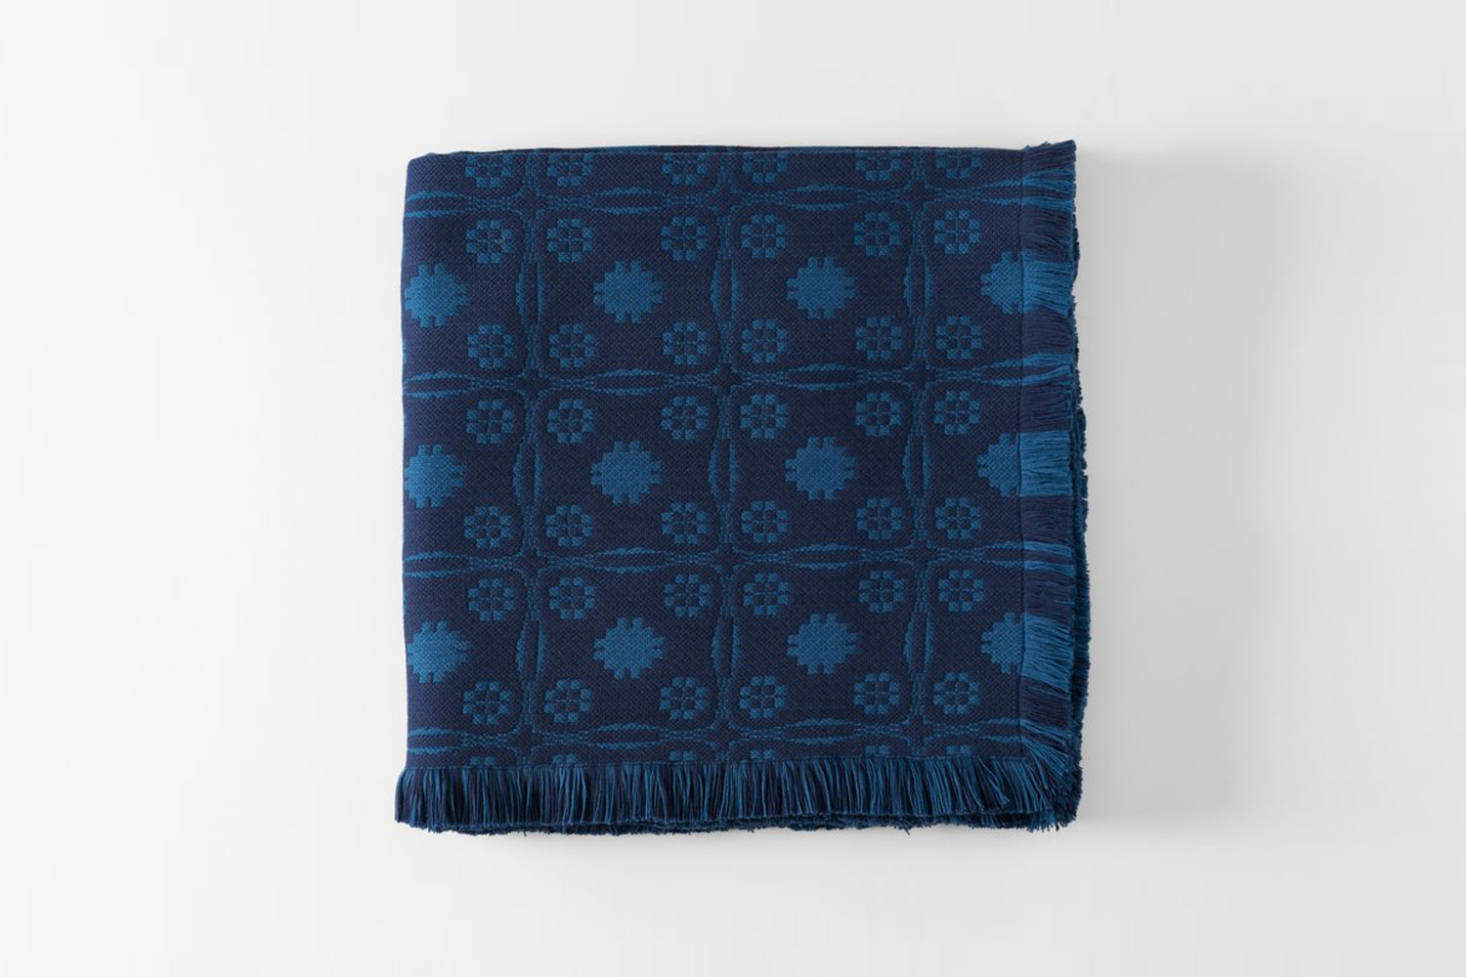 Stealth luxury: The MARCH Indigo Sturbridge Blanket from RP Miller is a weighty wool blanket woven in Guatemala from soft Merino wool; $src=